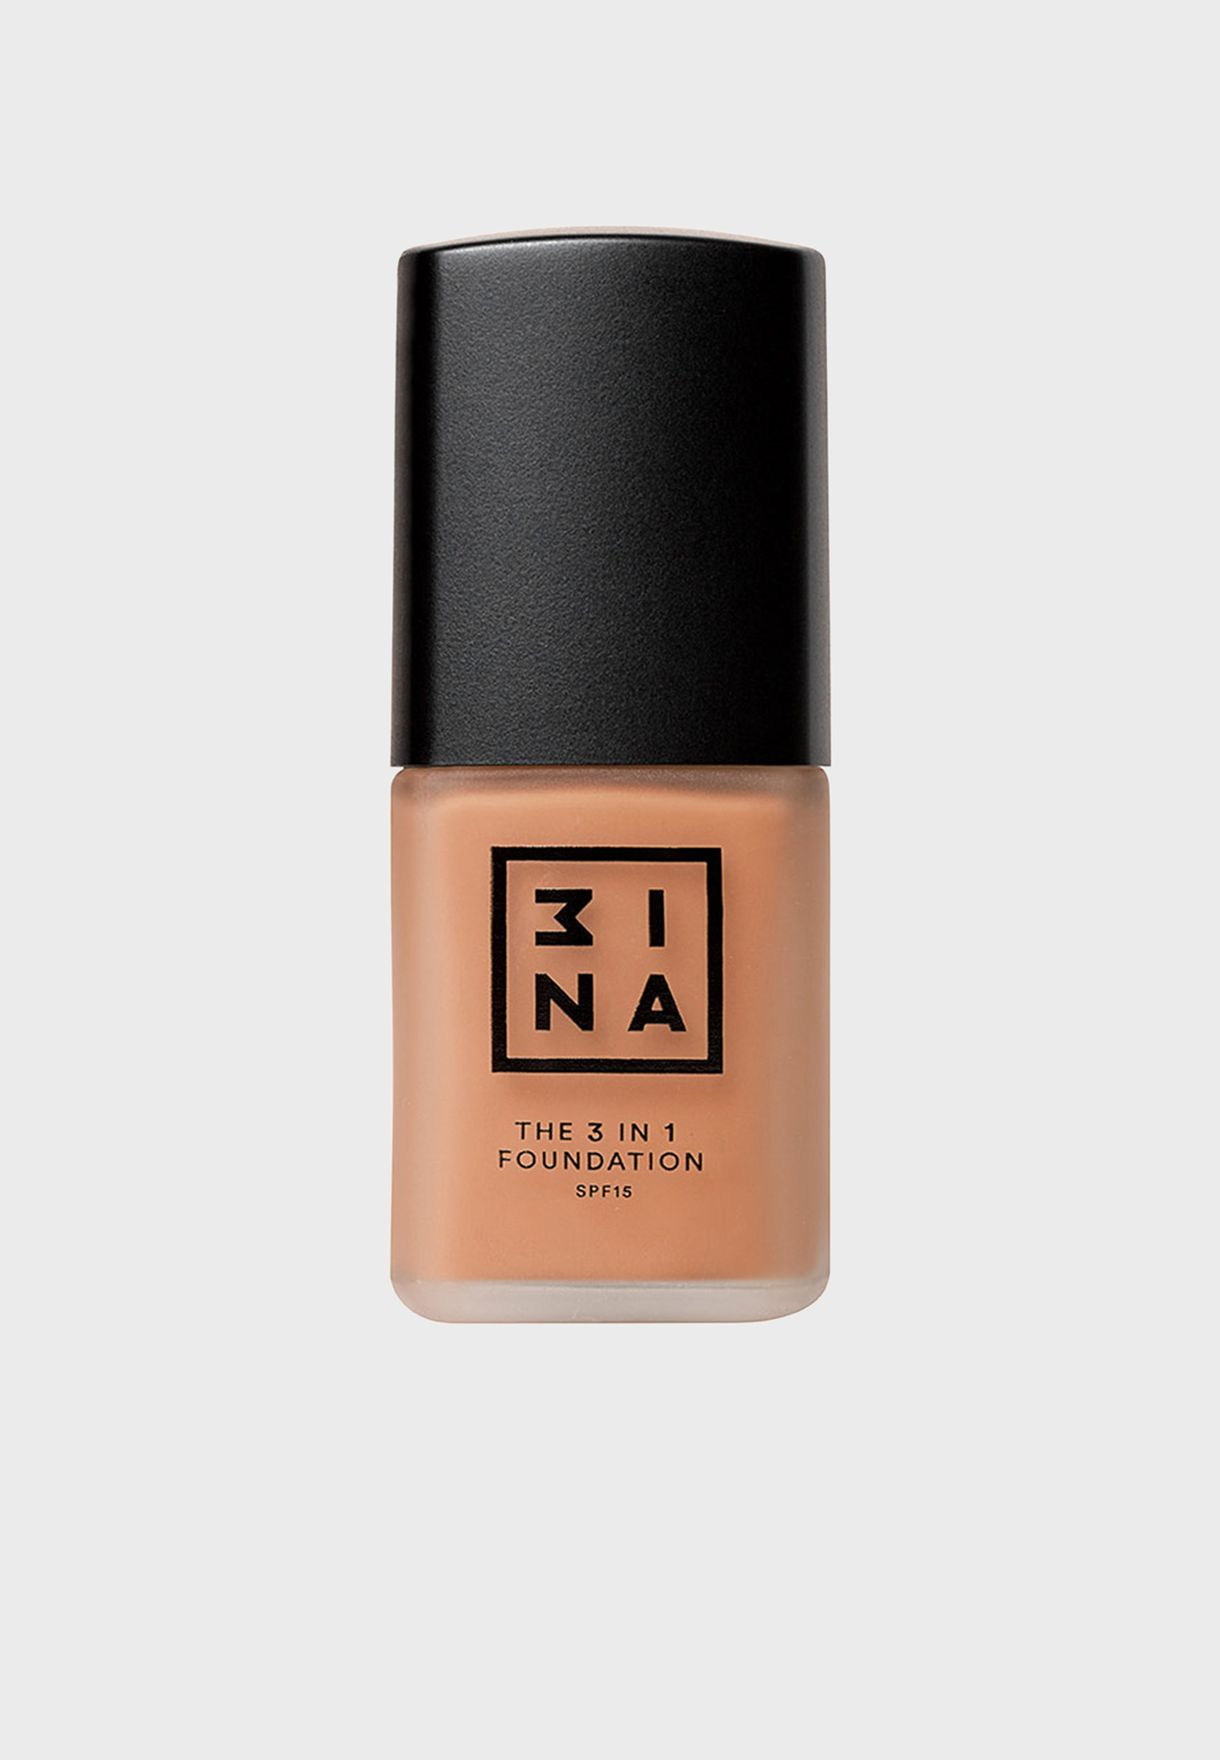 The 3-in-1 Foundation 218